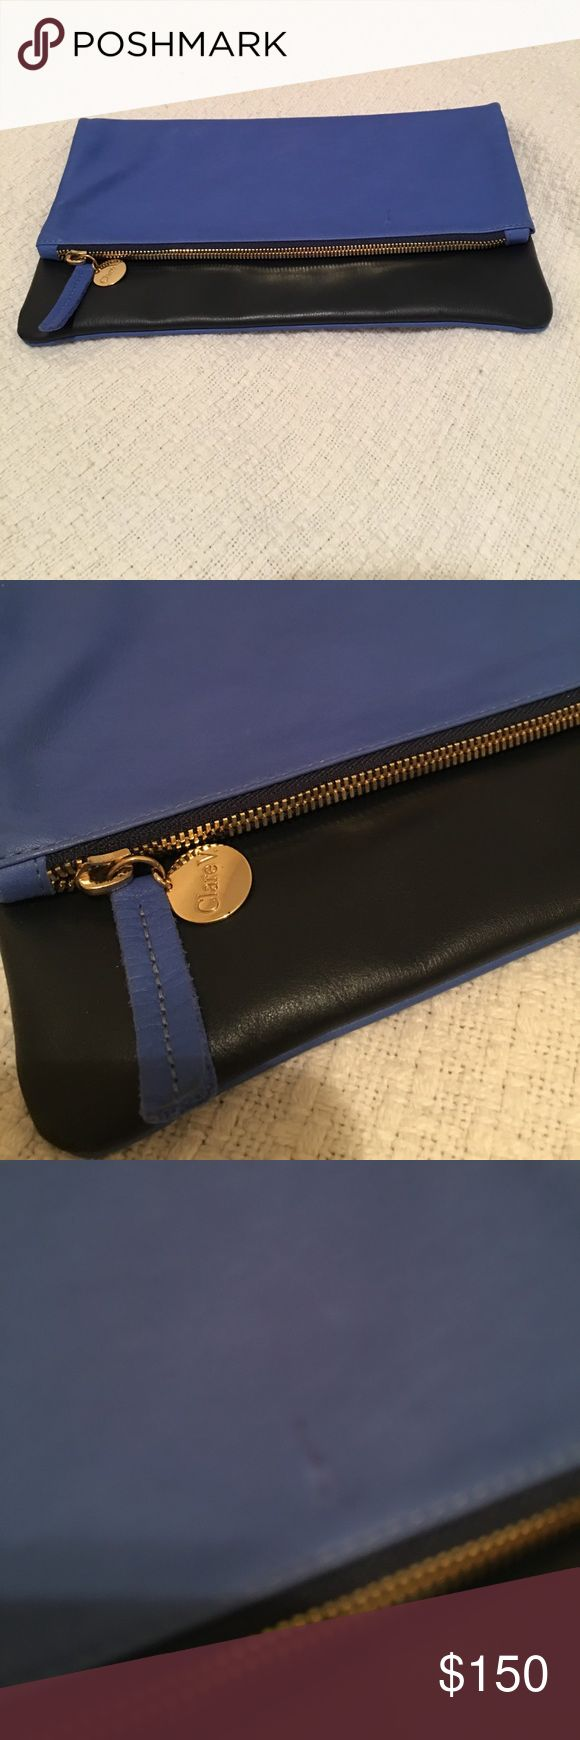 Clare V clutch Chambray lining. Cobalt and navy leather. Beautiful. Carried this twice. There is a slight discoloration on the bag as pictured. Clare Vivier Bags Clutches & Wristlets